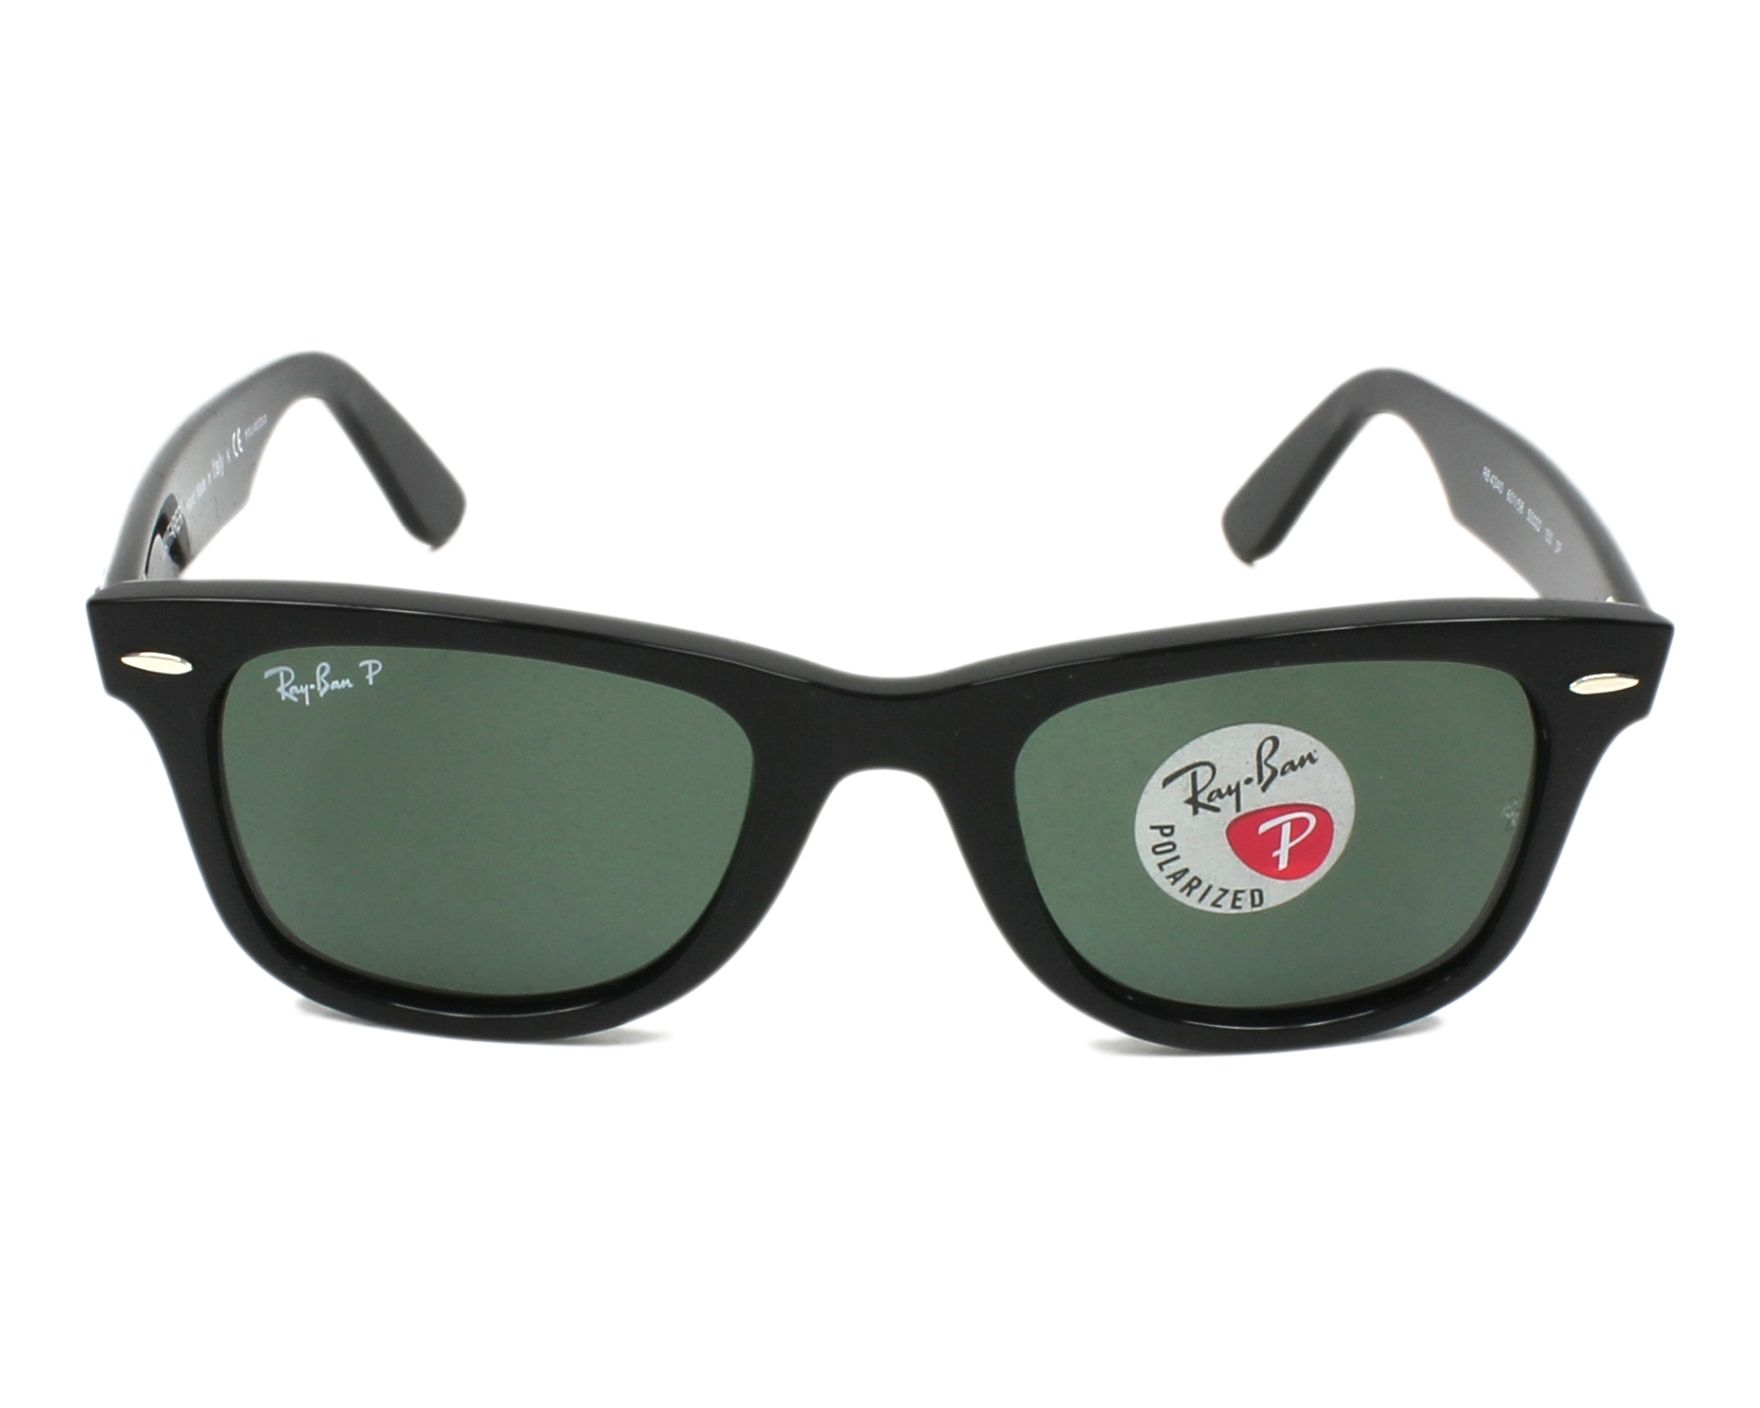 ad8854f978cf4 Sunglasses Ray-Ban RB-4340 601 58 50-22 Black front view